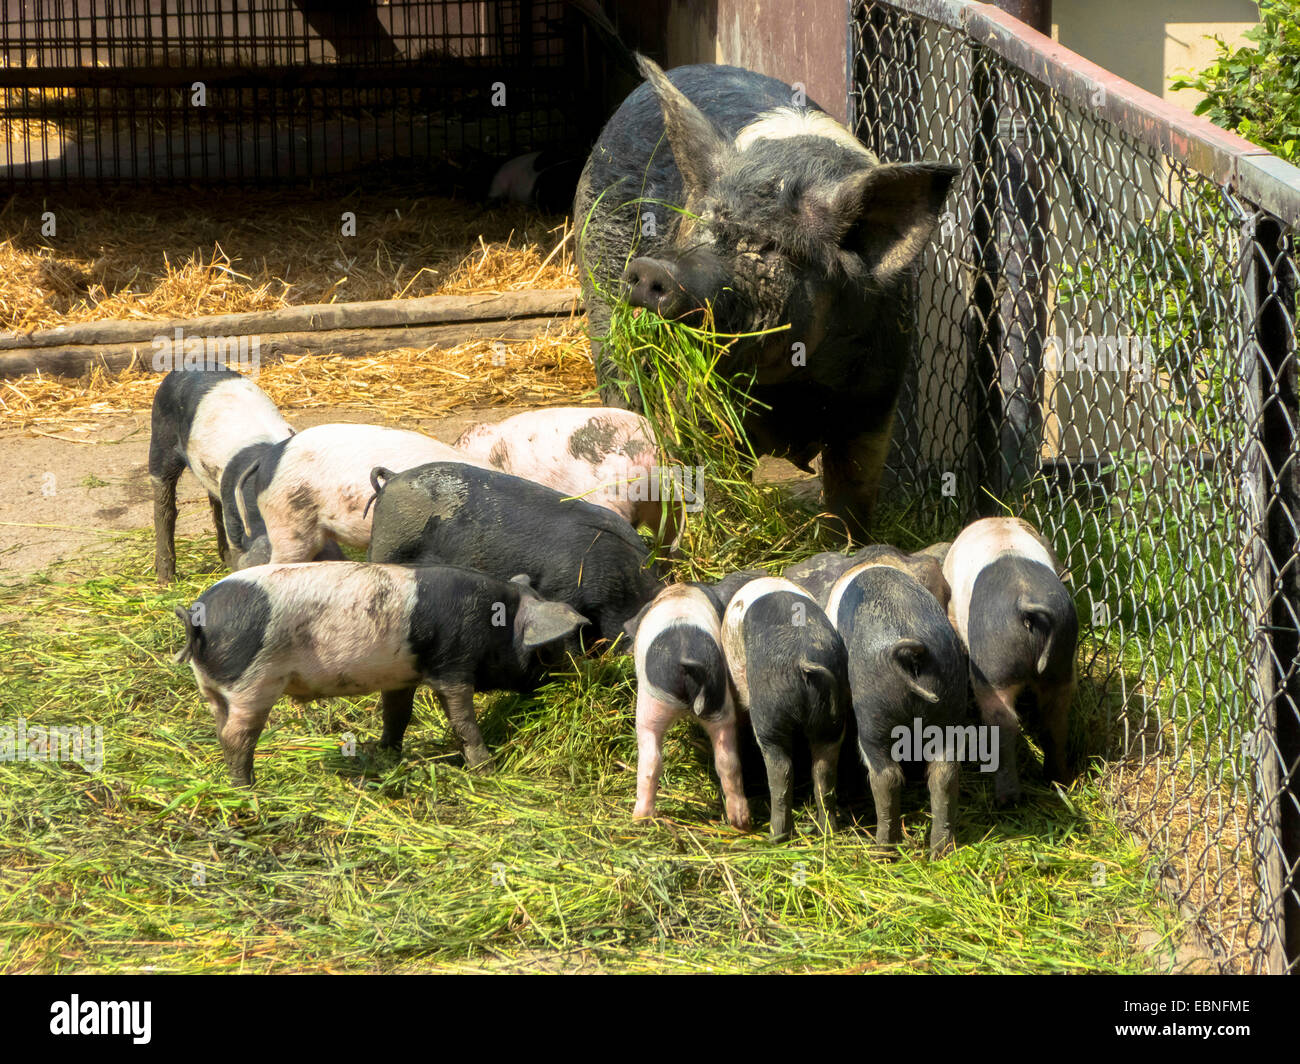 Angeln Saddleback, Angler Sattelschwein  (Sus scrofa f. domestica), sow with piglets when feeding - Stock Image